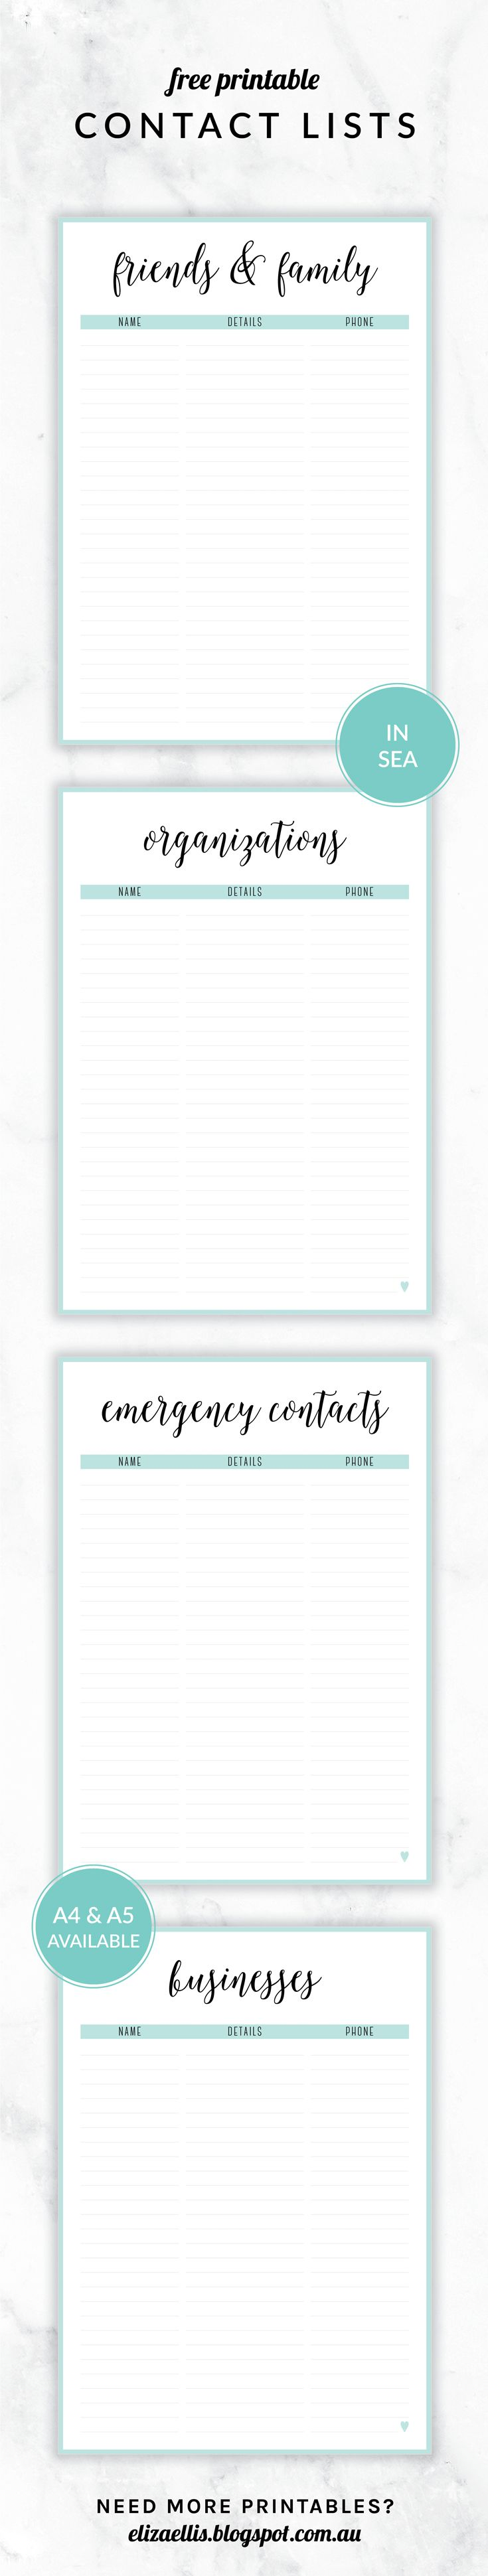 Printable Contact List Beauteous Free Printable Irma Contact Lists  Eliza Ellisincluding .